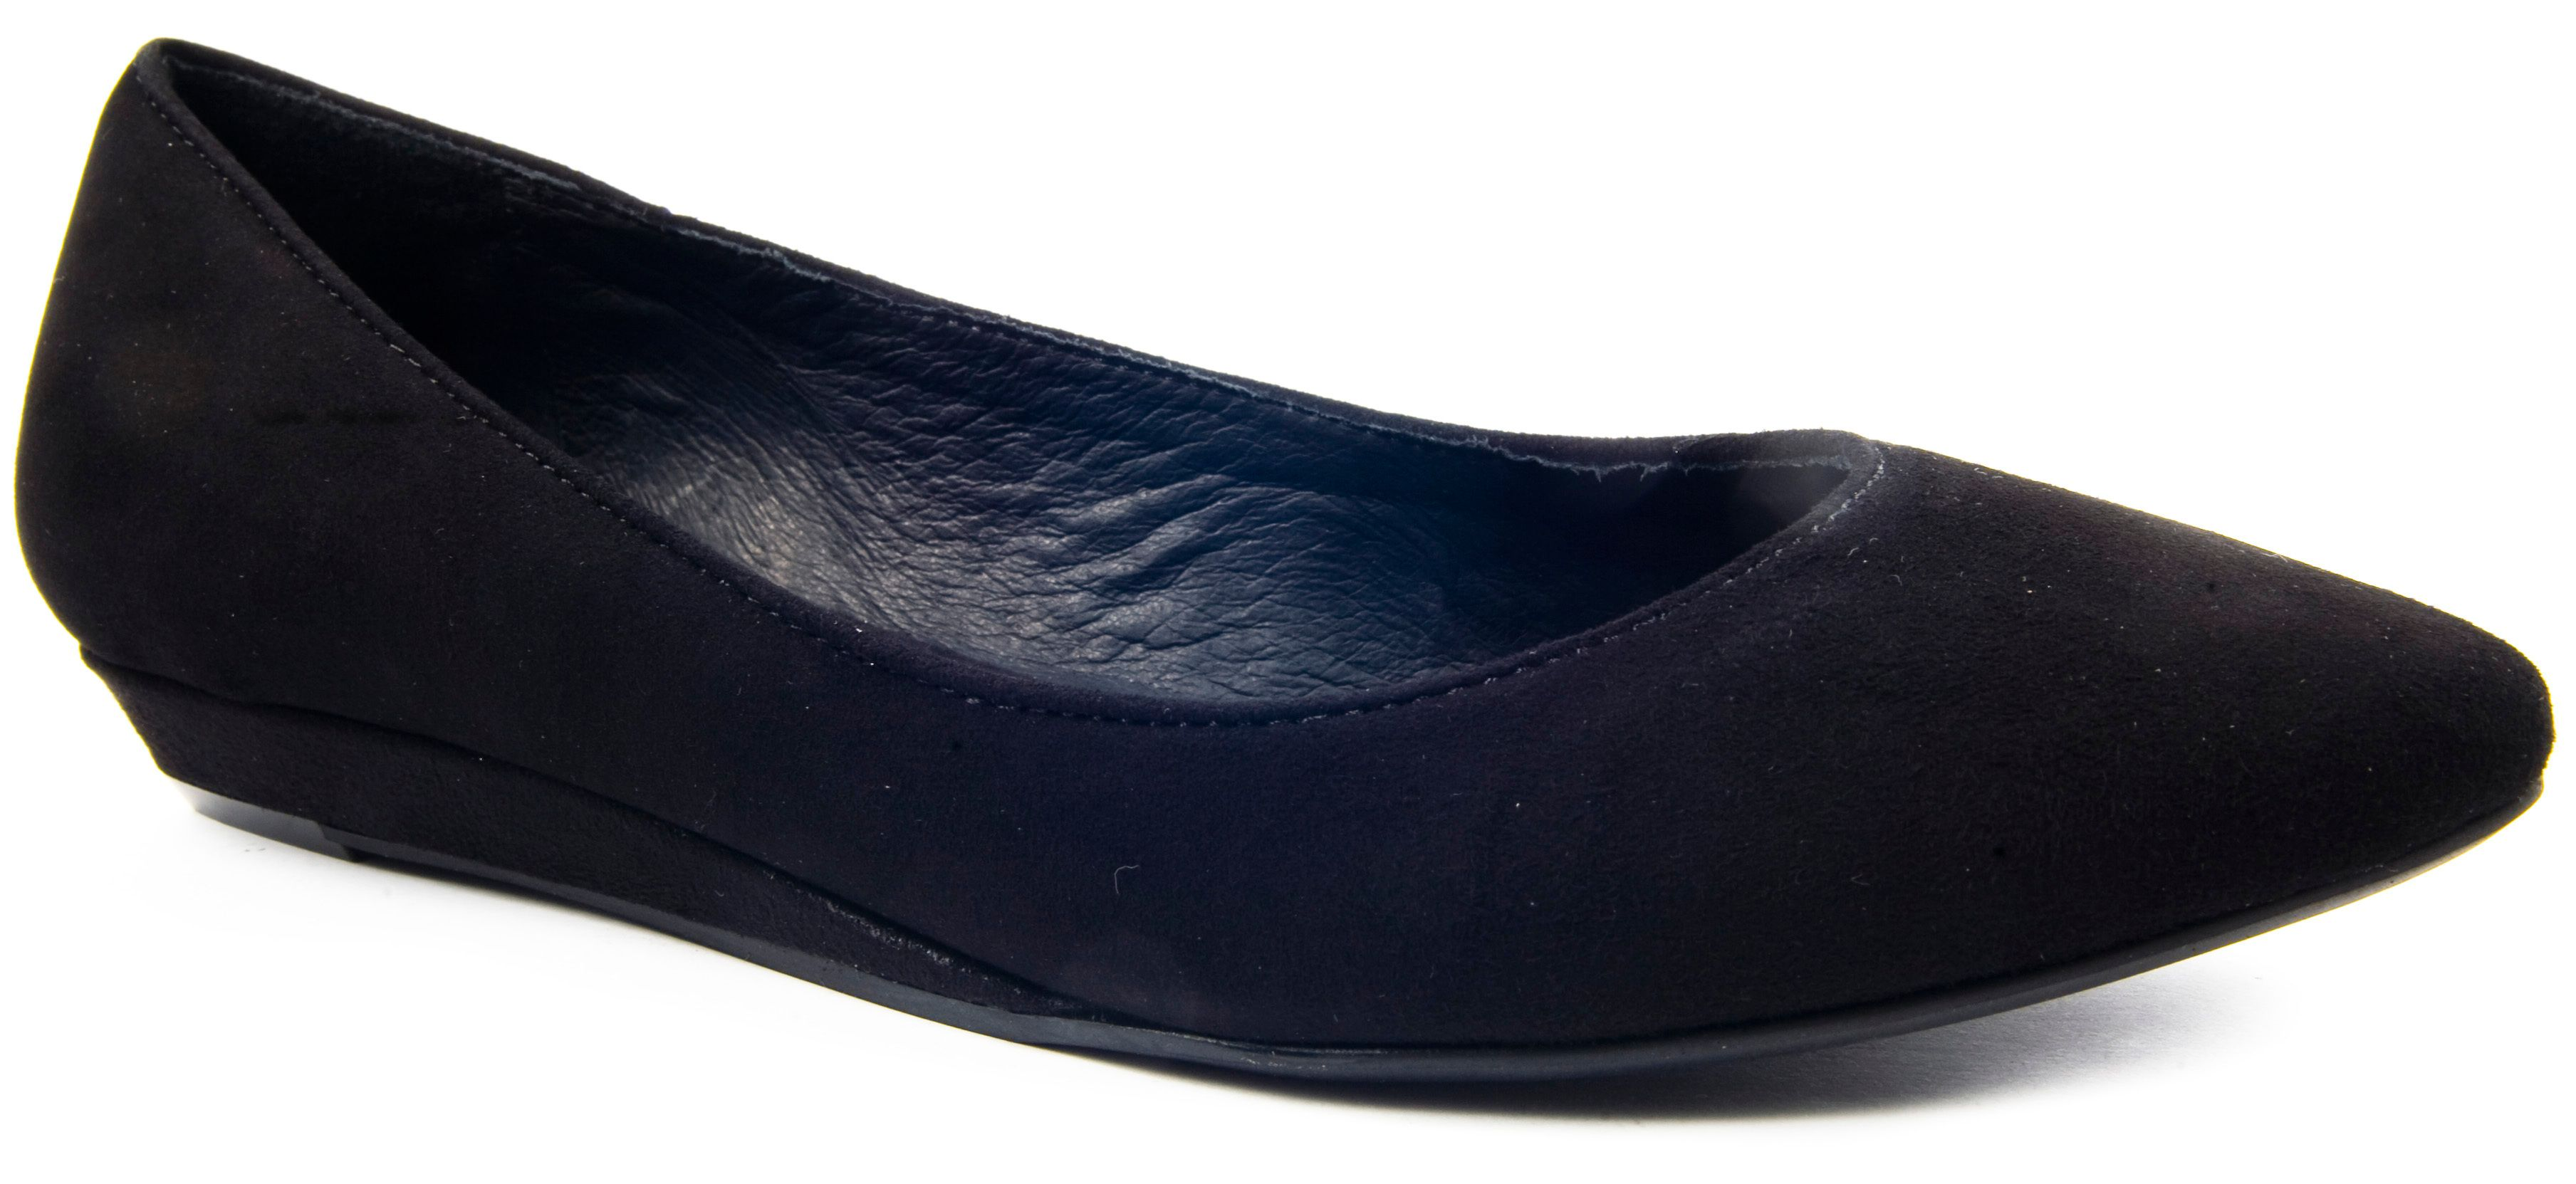 Gabriella flat shoes